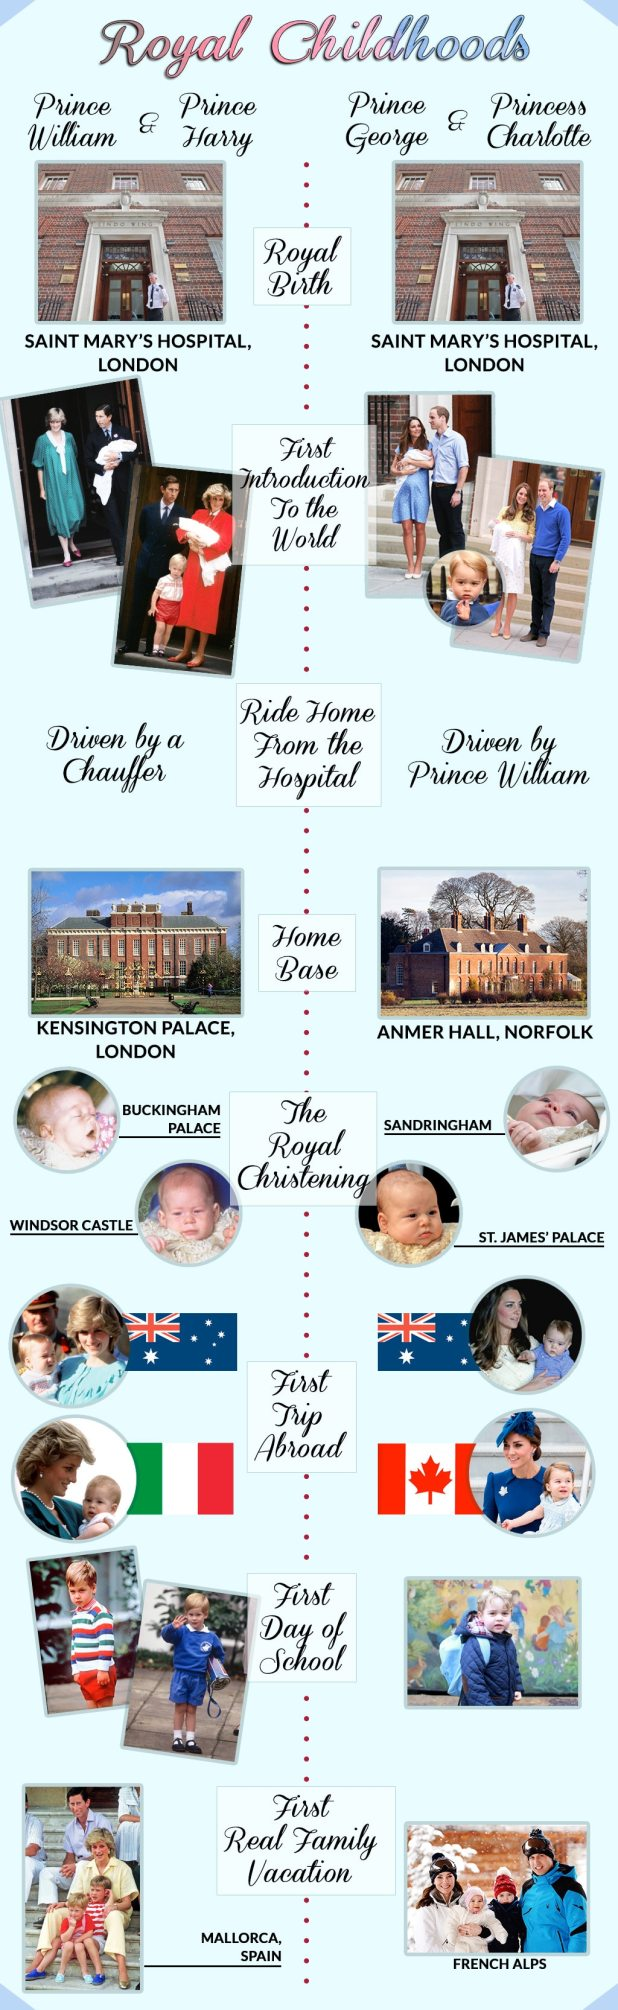 Timeline of the Royal Childhoods